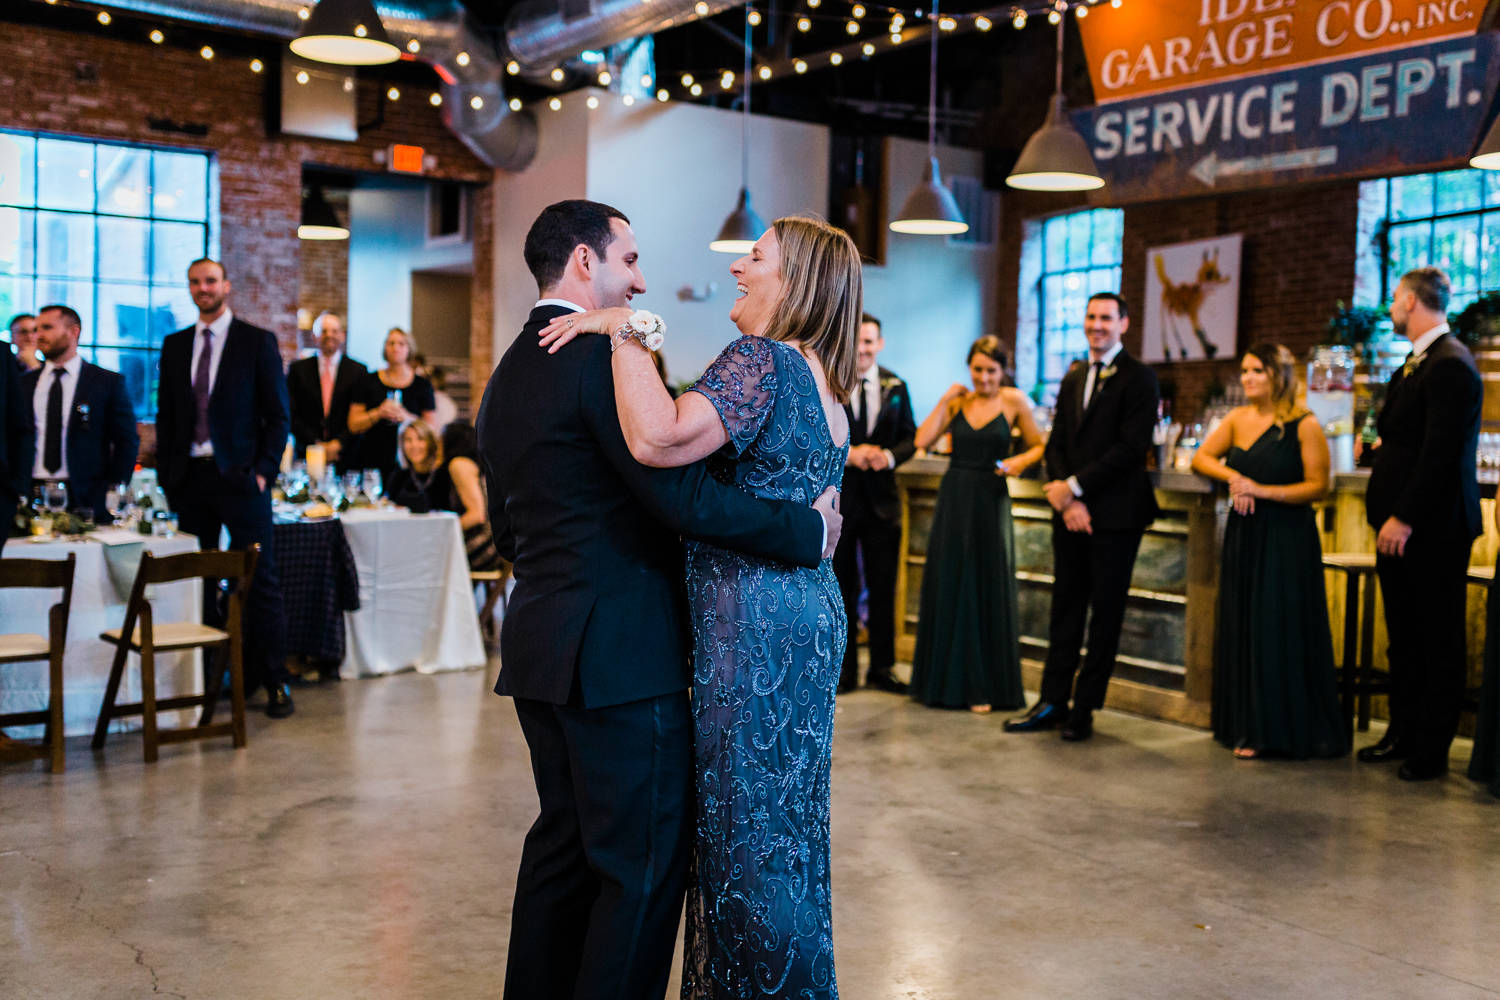 Groom dancing with his mother at wedding - top rated photographer in Maryland